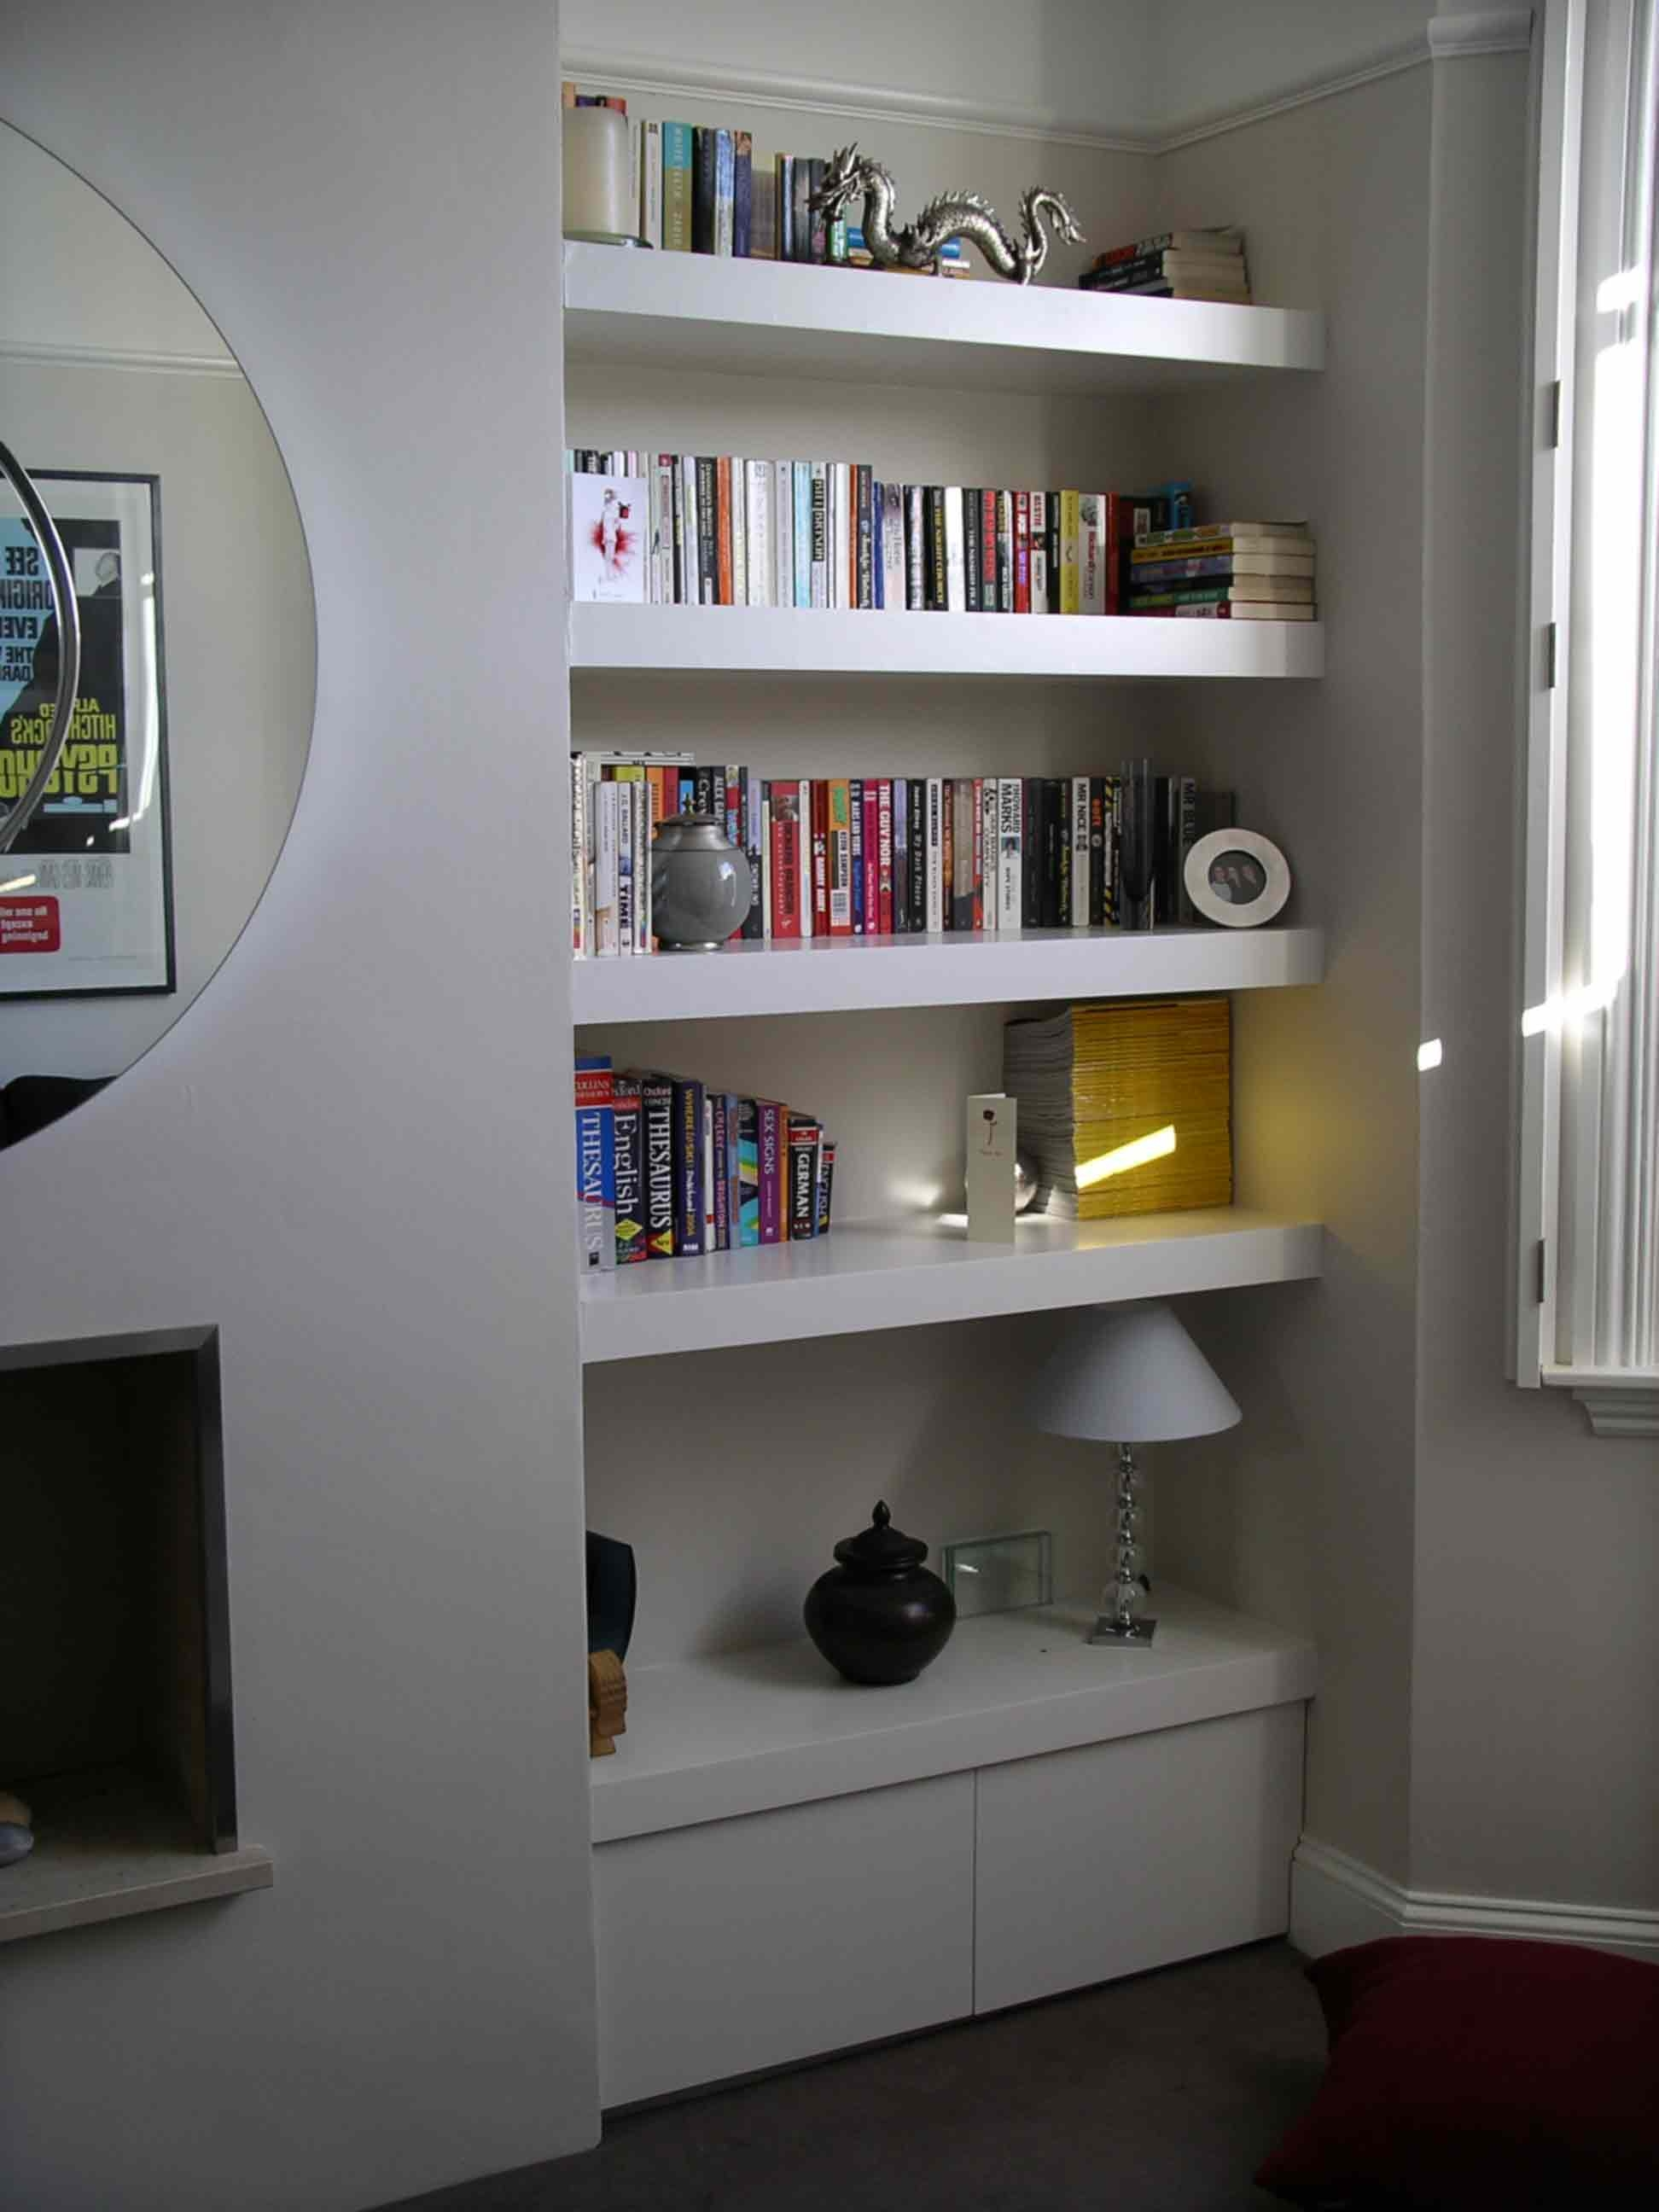 Fitted Wardrobes Bookcases Shelving Floating Shelves London For Fitted Shelving Systems (View 8 of 15)